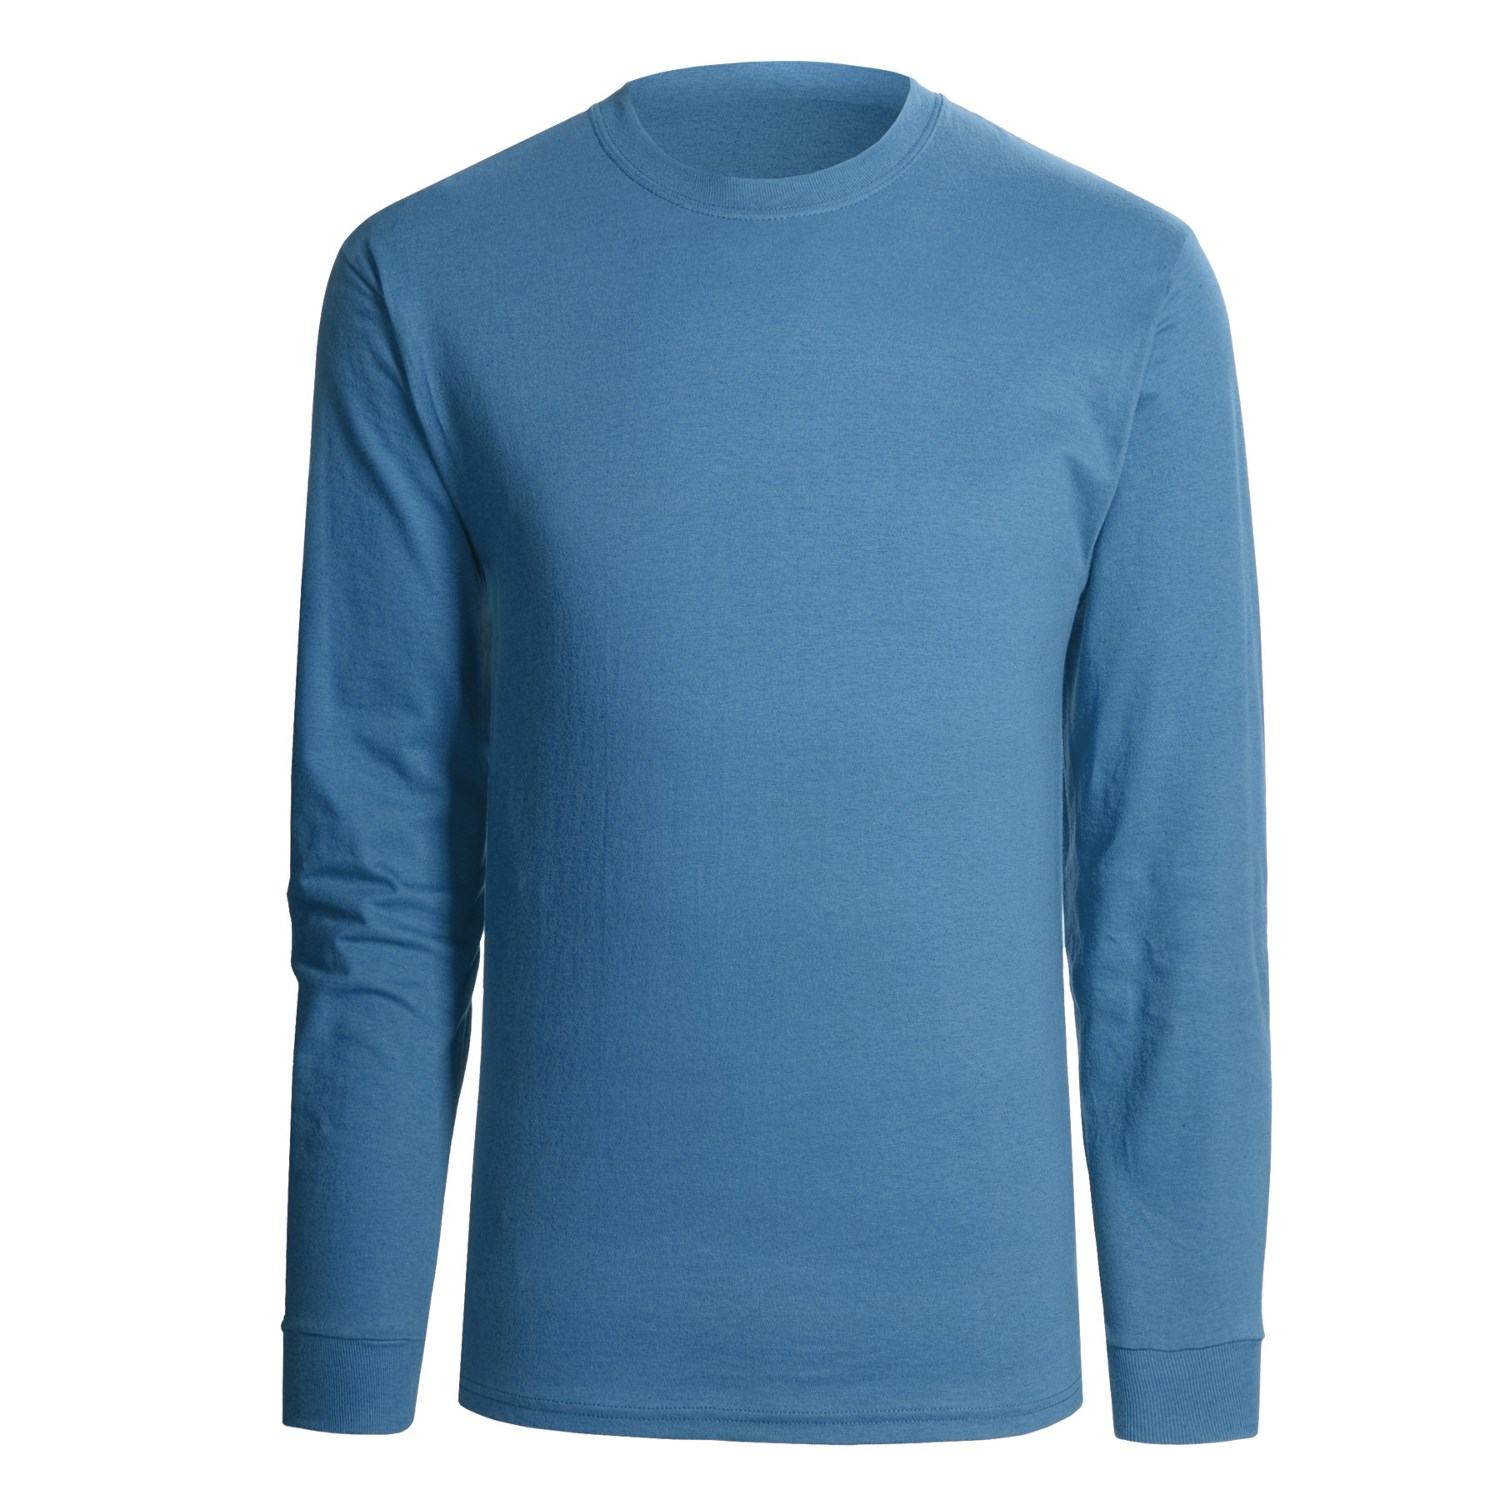 Plain Long Sleeve Tagless T Shirts By Hanes - Male Models ...